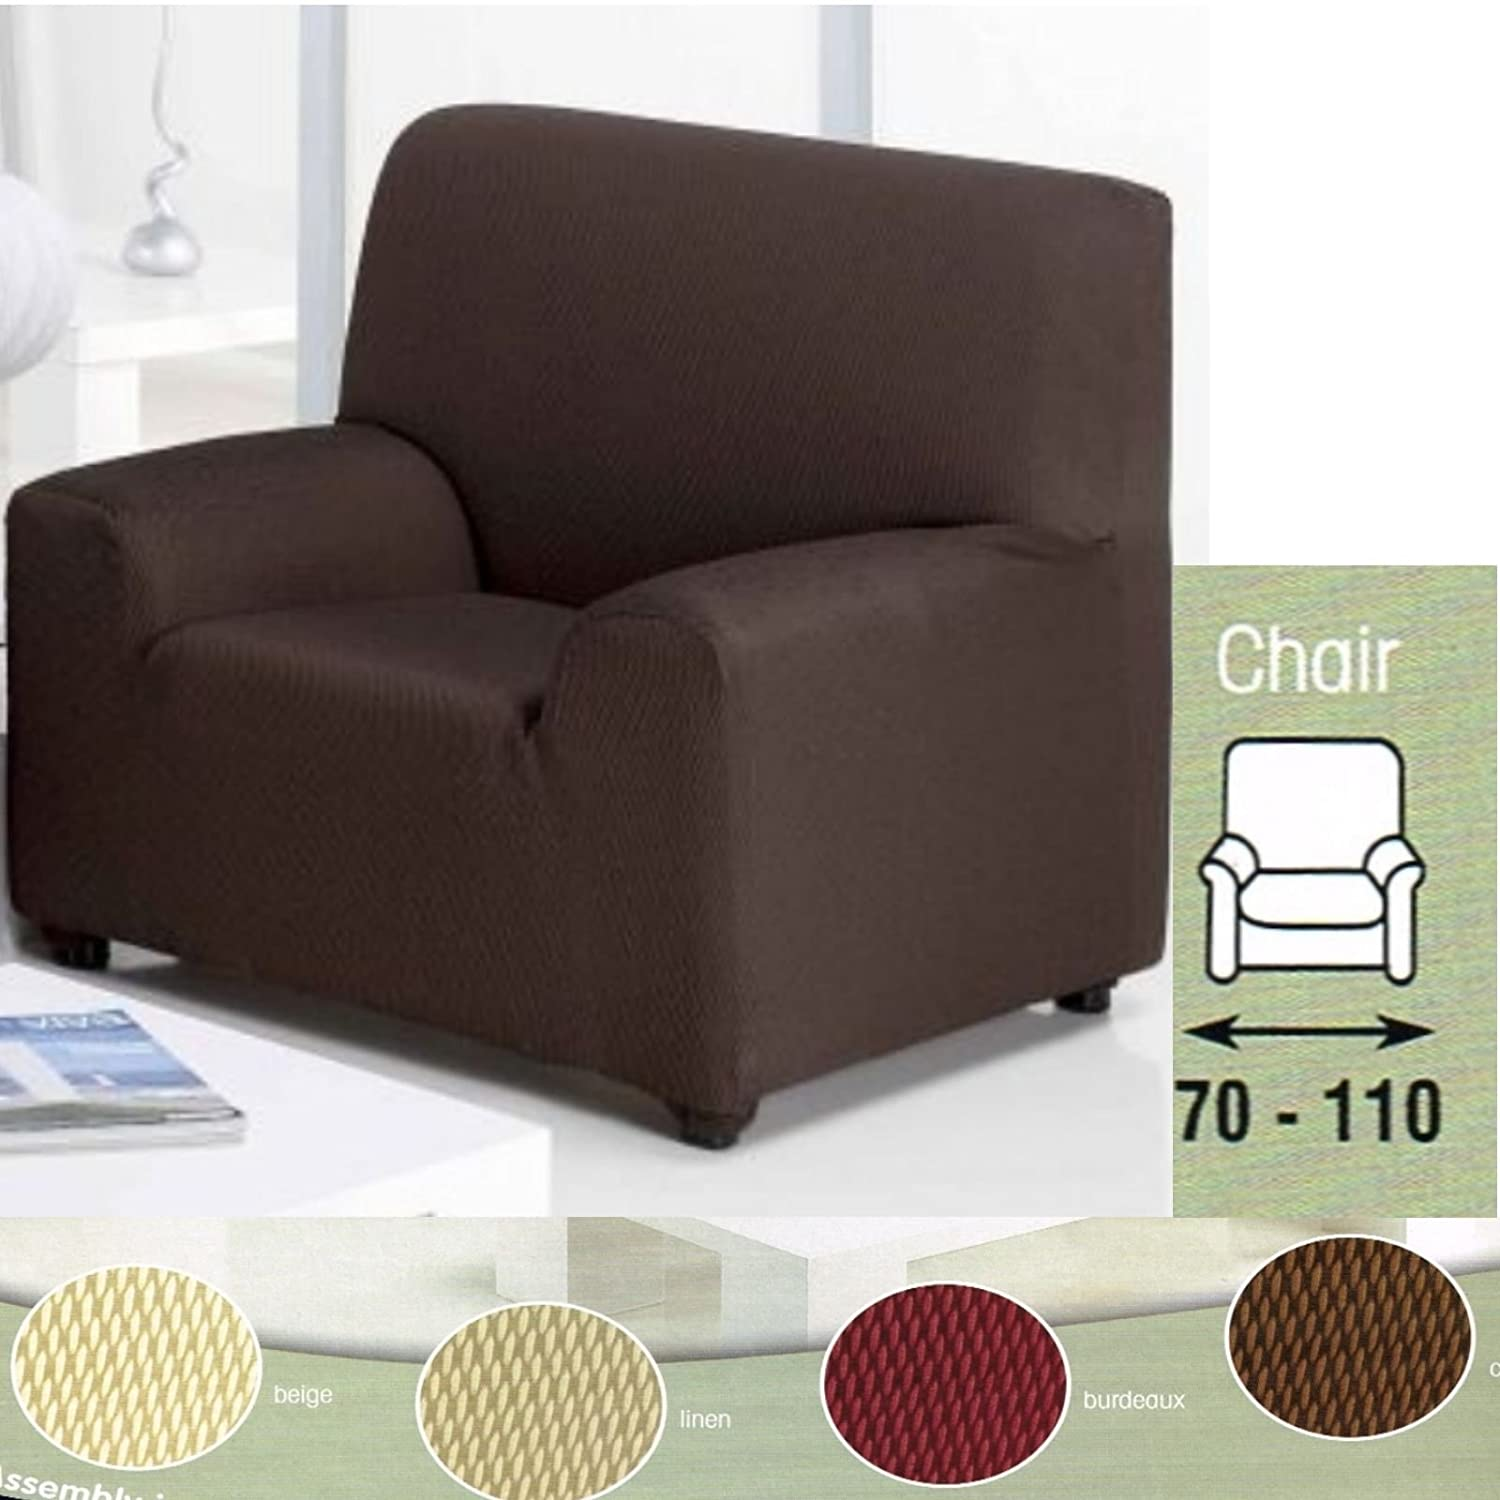 Easy Fit Stretch Elastic Arm Chair e Seater Beige Cream Fabric